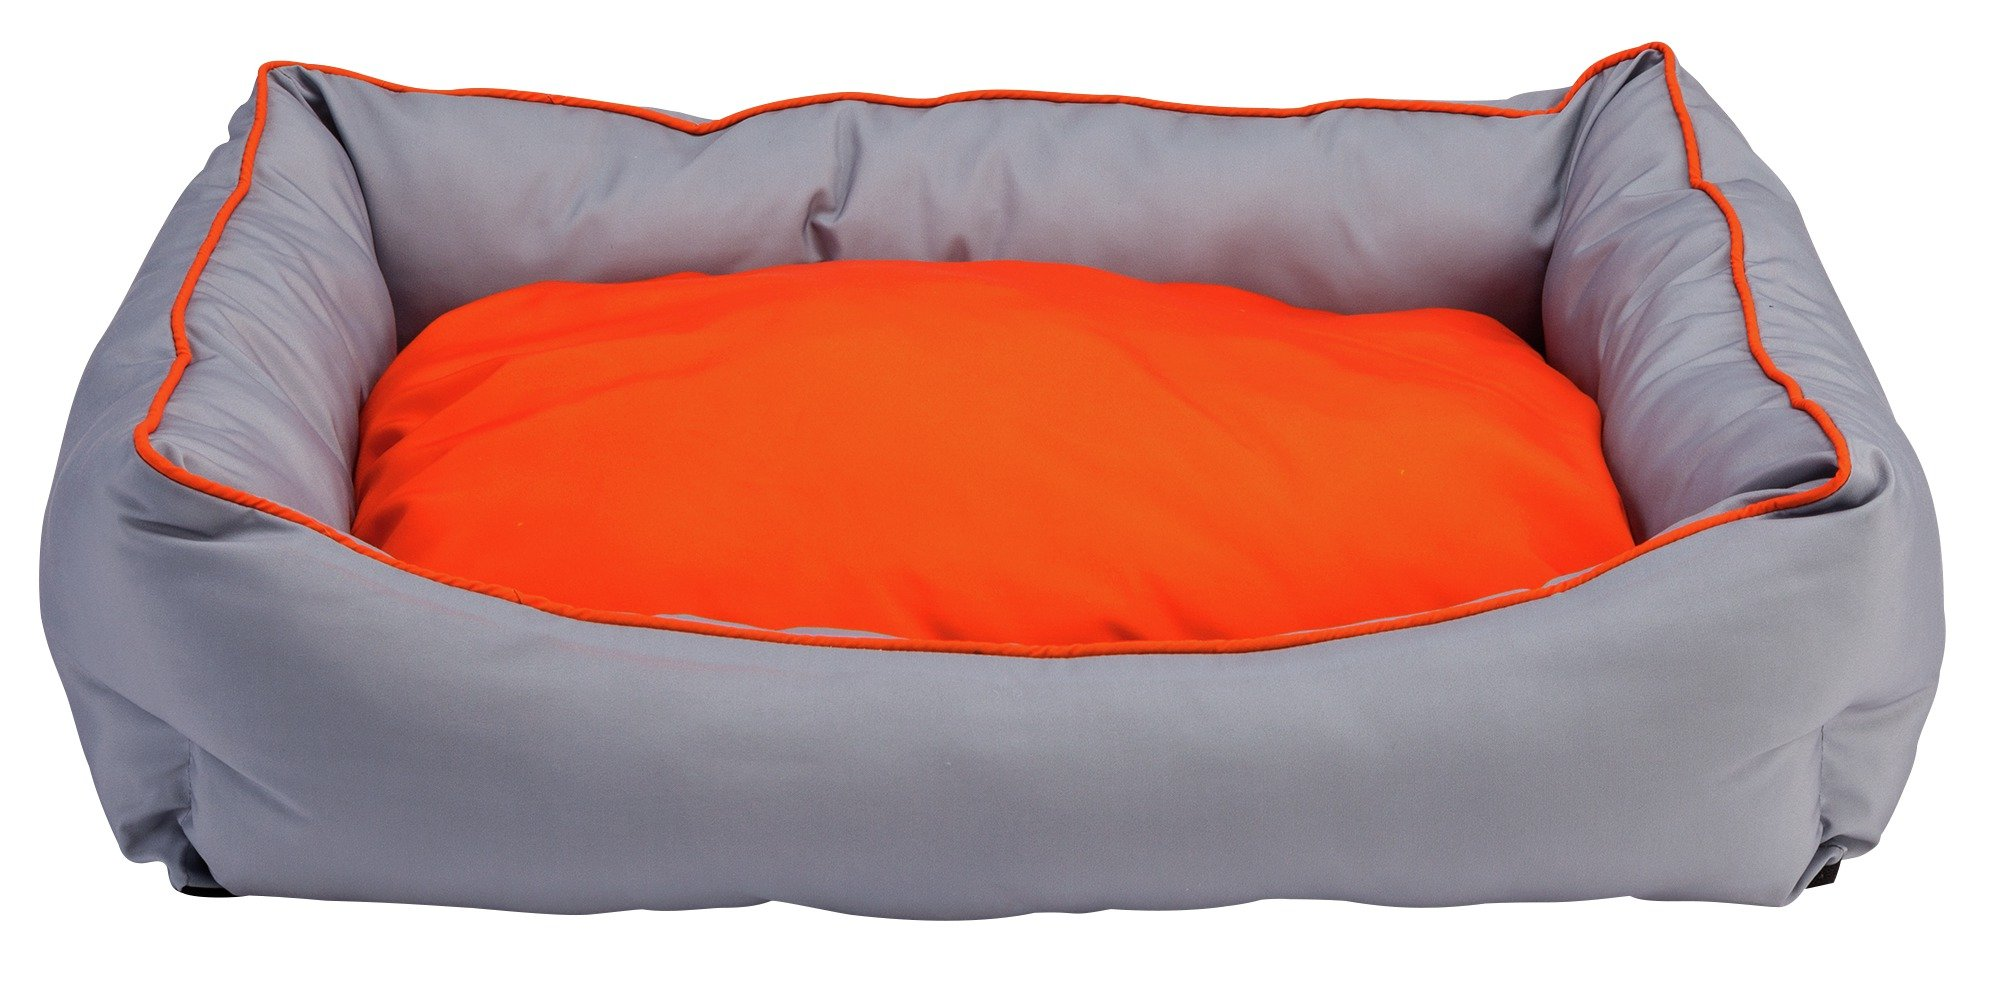 Maxwell Square Large Pet Bed